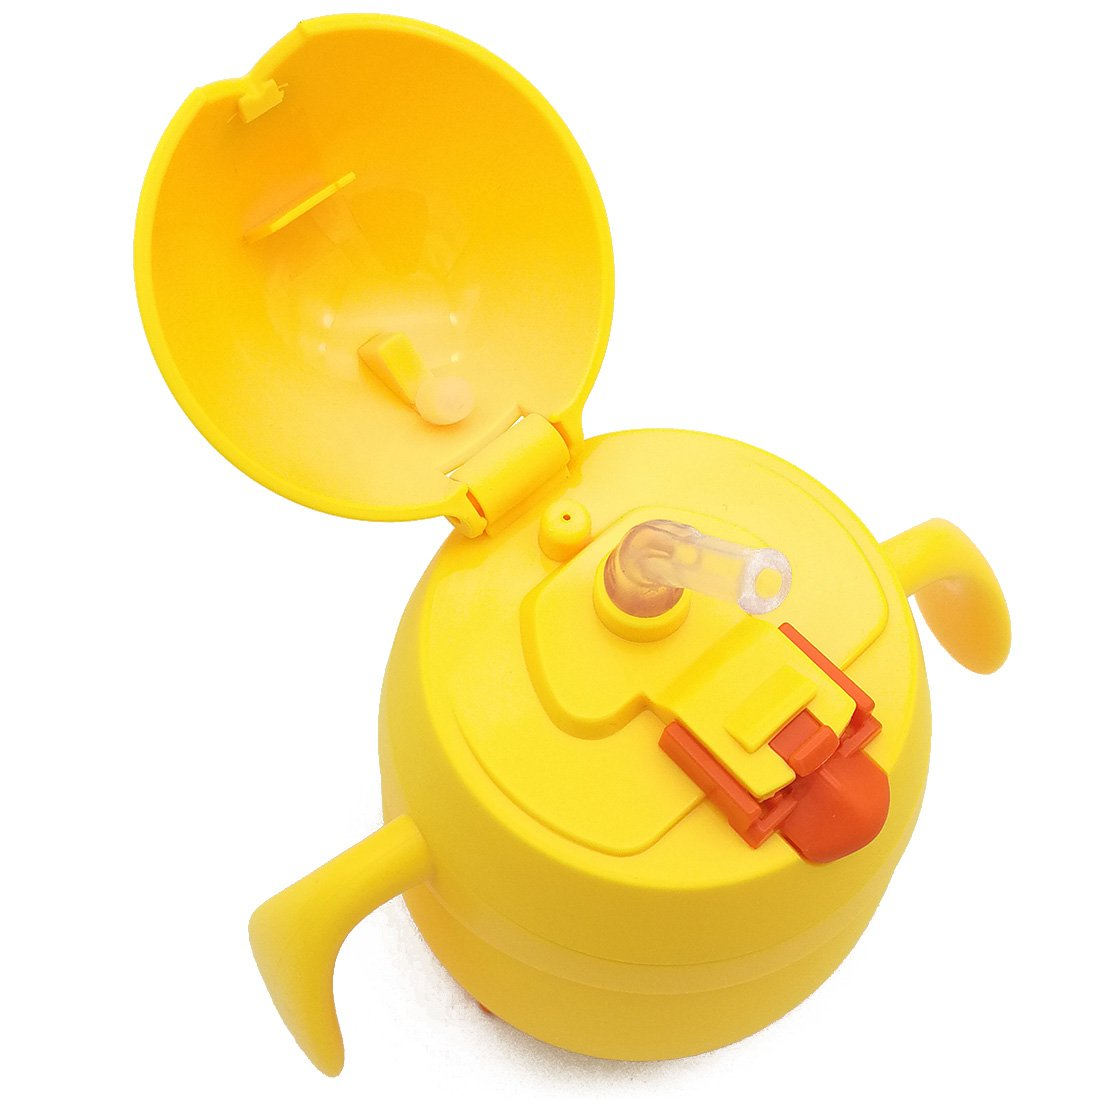 Water Bottle Thermos Flask Drinkware with Straw LEAK PROOF BPA FREE Cute Cartoon Yellow Chick for Kids